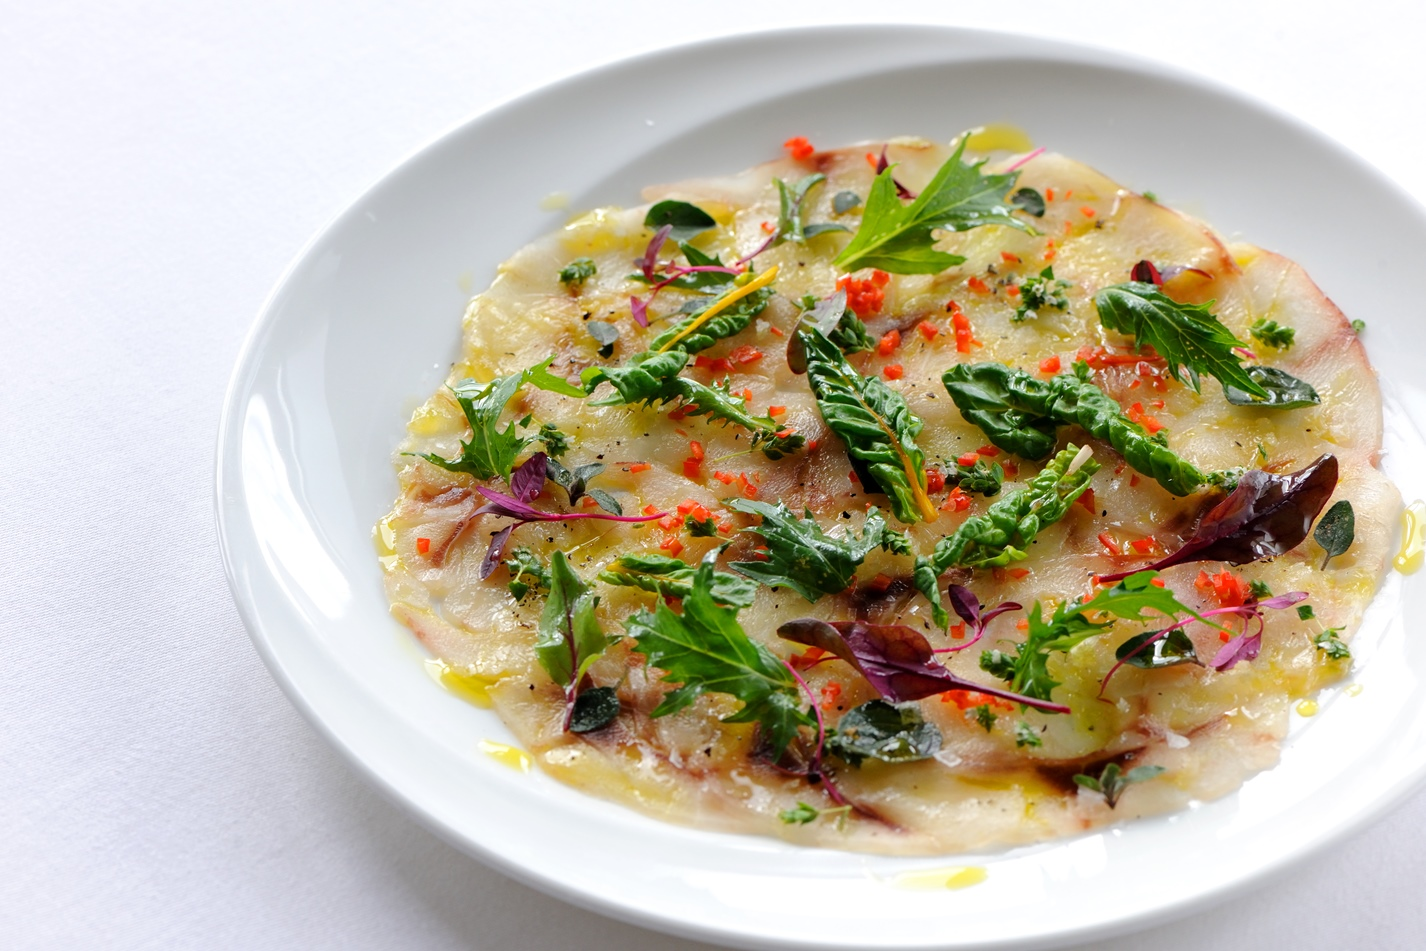 Sea bass carpaccio with chilli, oregano and olive oil